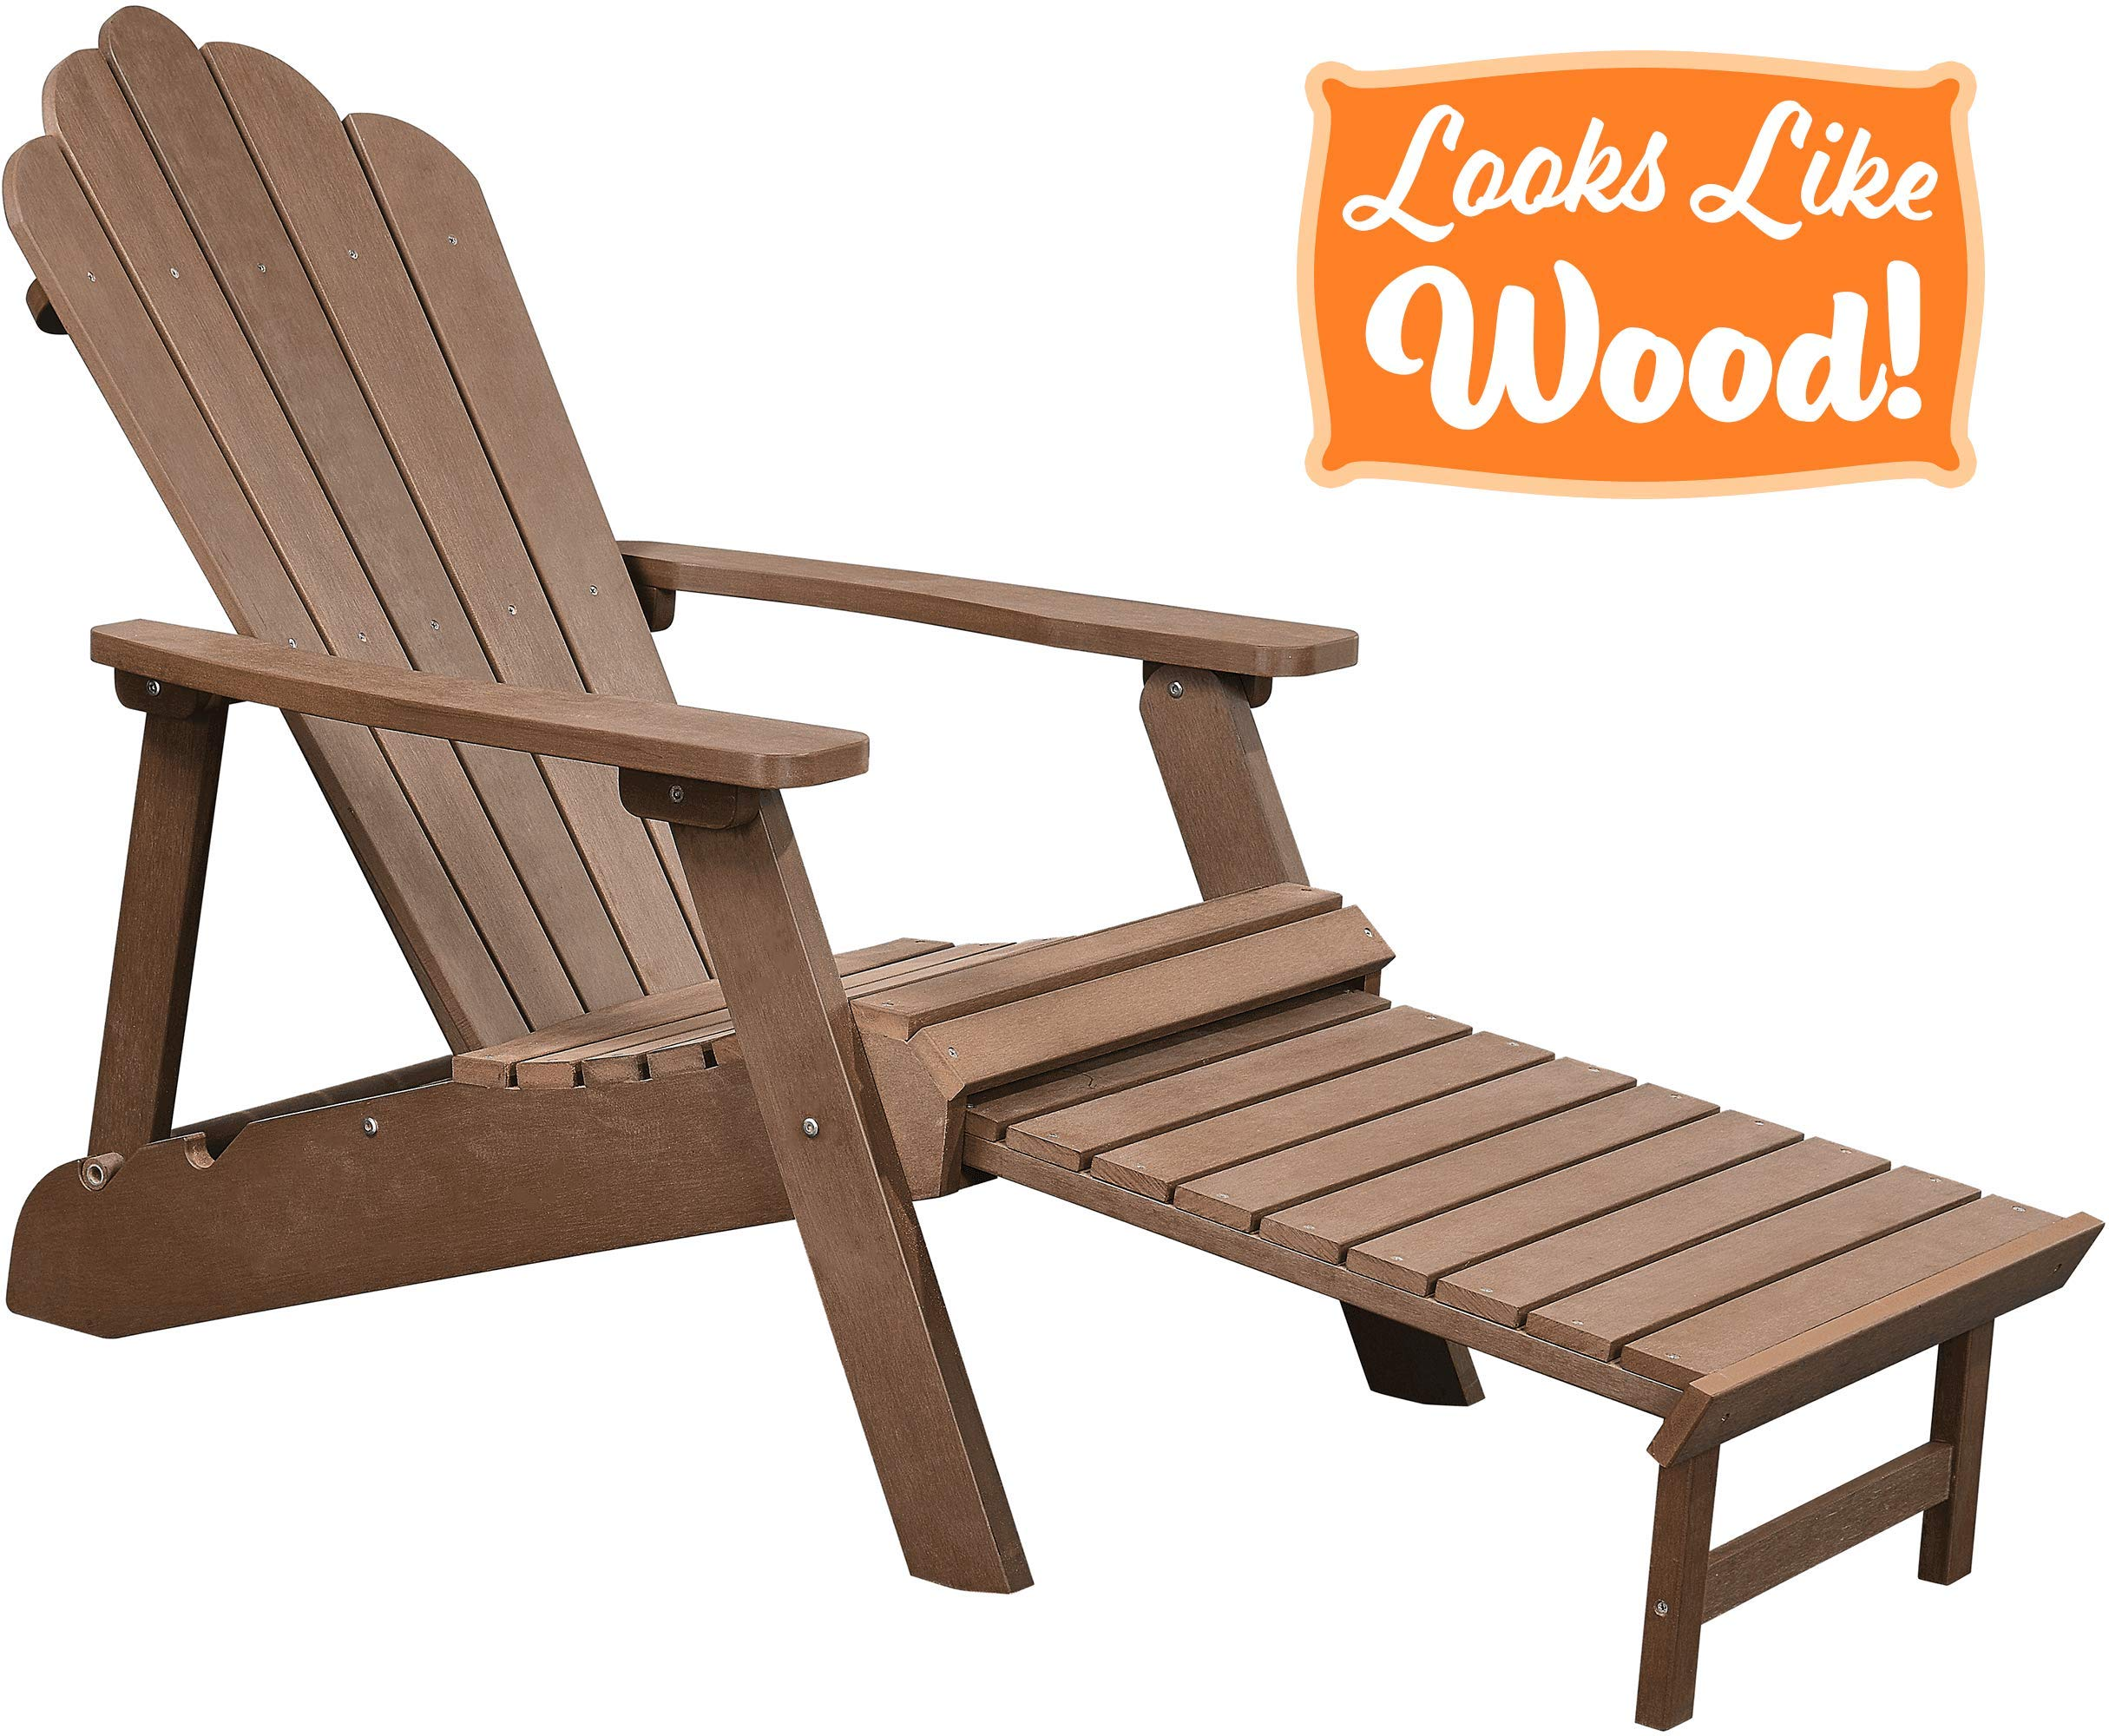 PolyTEAK Deluxe Oversized Reclining Poly Adirondack Chair with Pullout Ottoman, Walnut Brown | Adult-Size, Weather Resistant, Made from Plastic by PolyTEAK